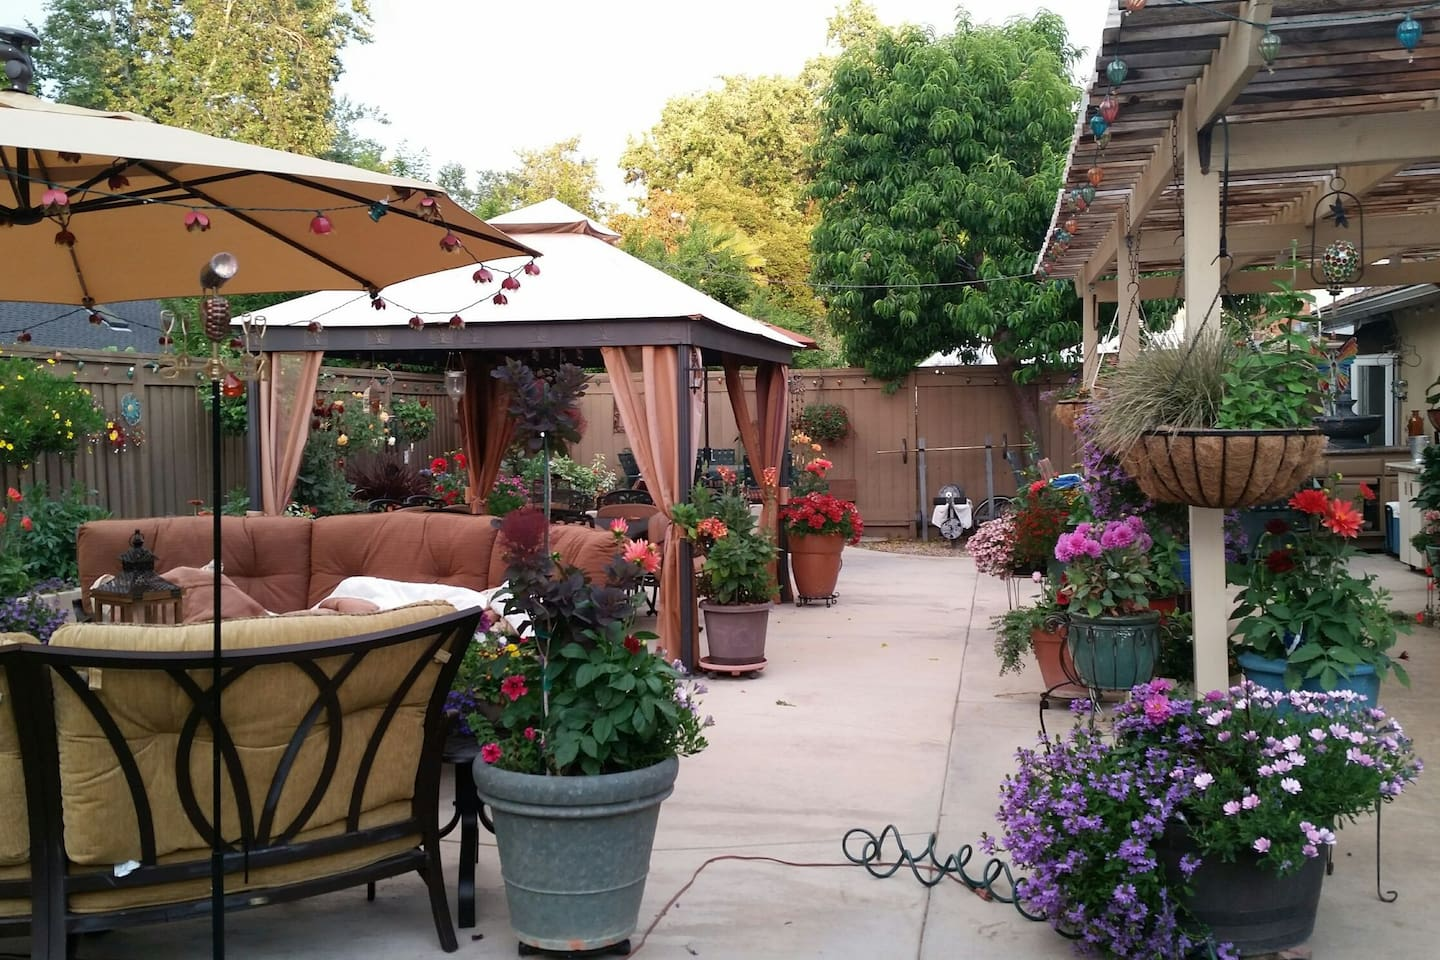 Outdoor patio with dining table and conversation seating area